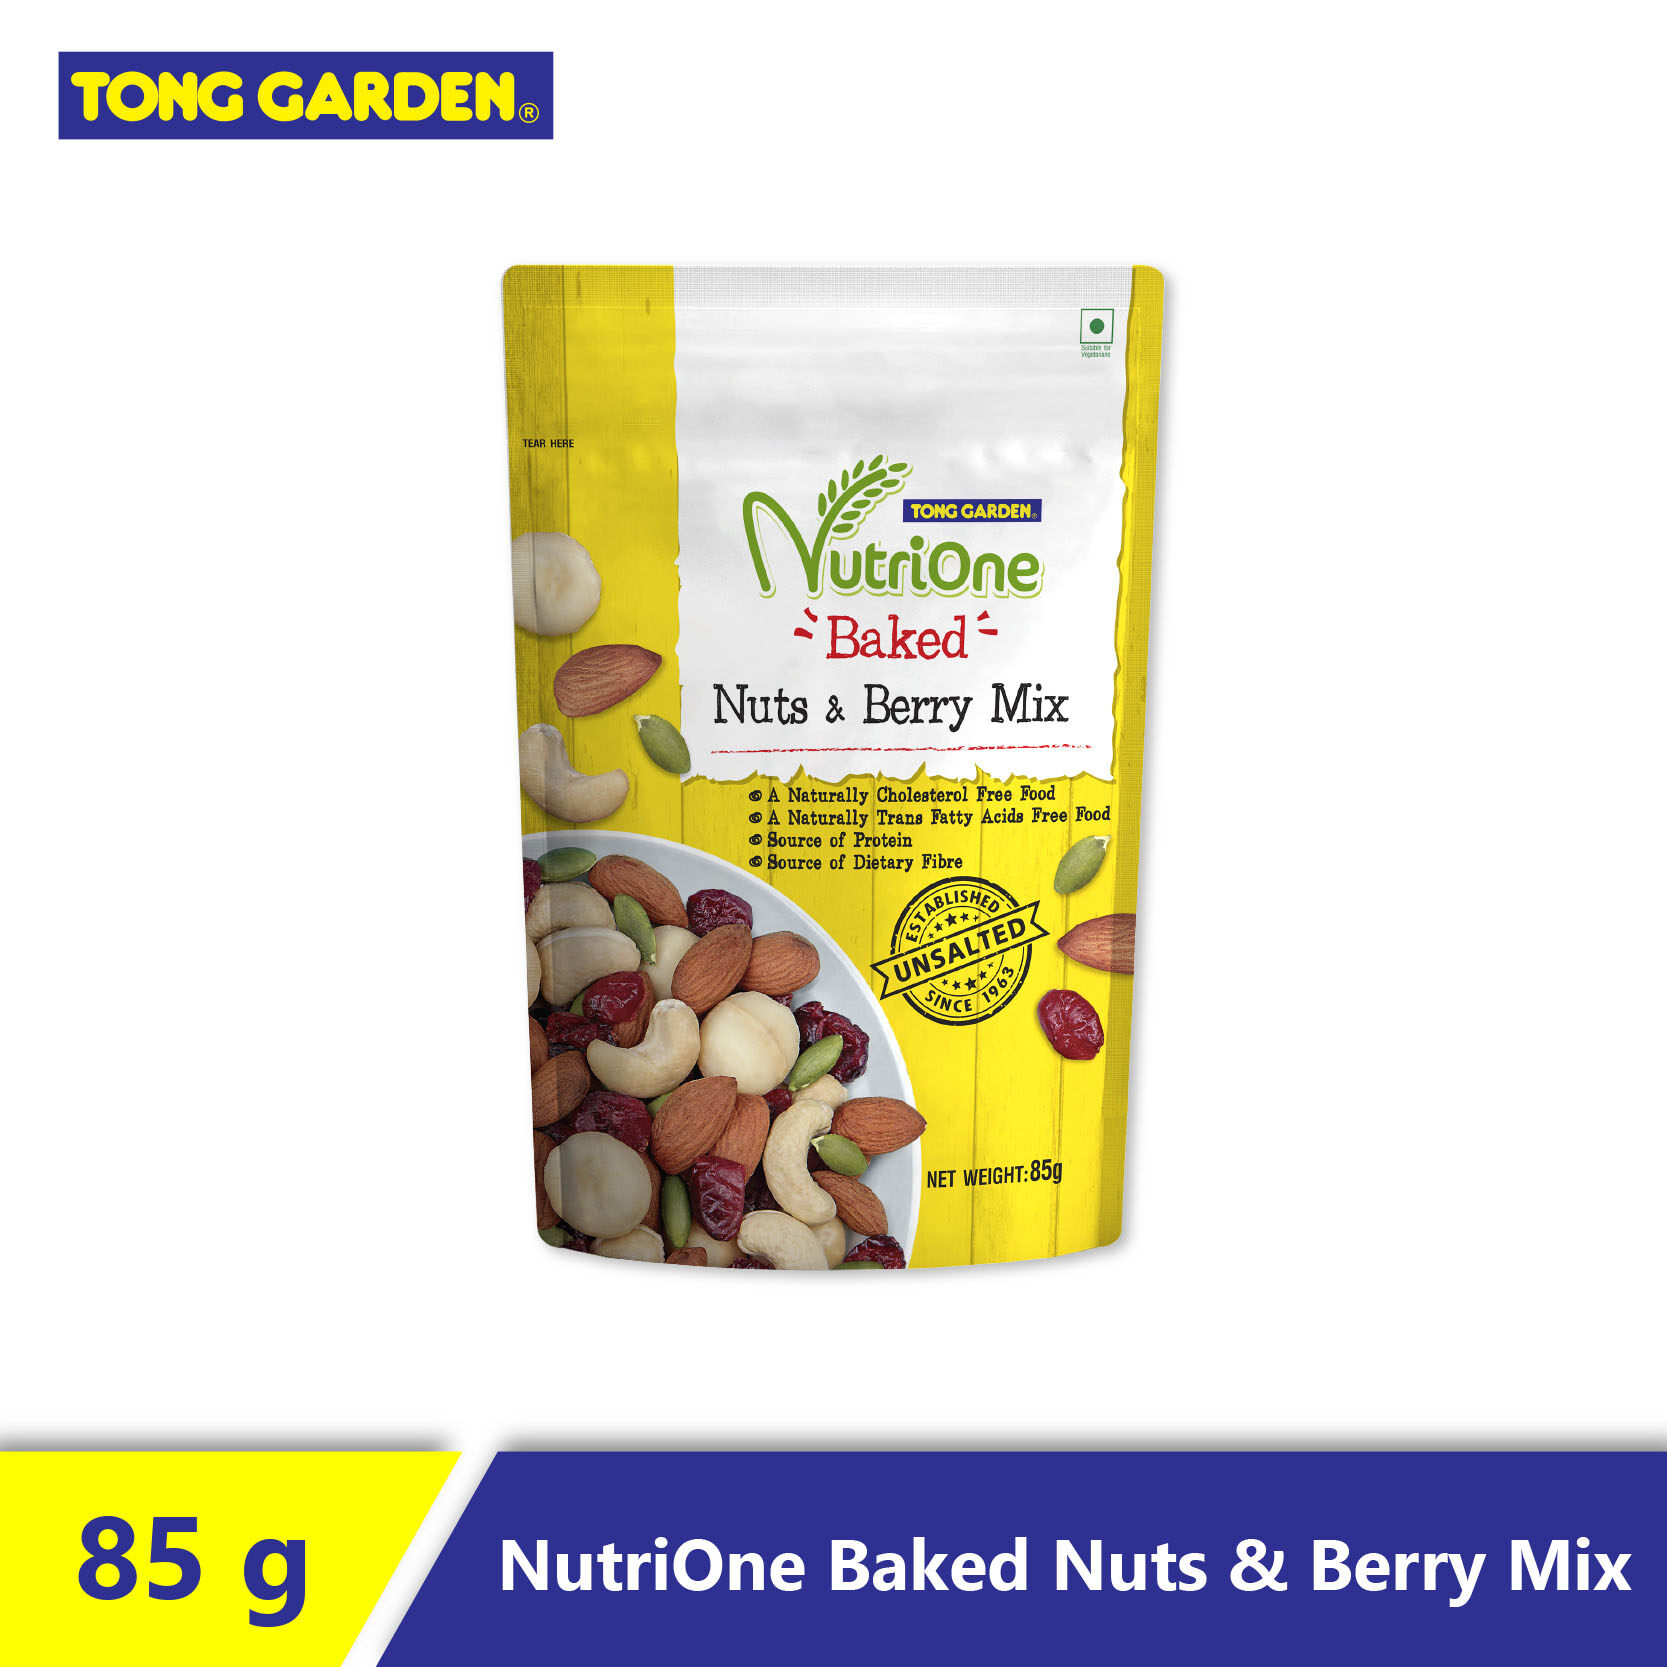 NutriOne Baked Nuts and Berry Mix (Unsalted) 85g